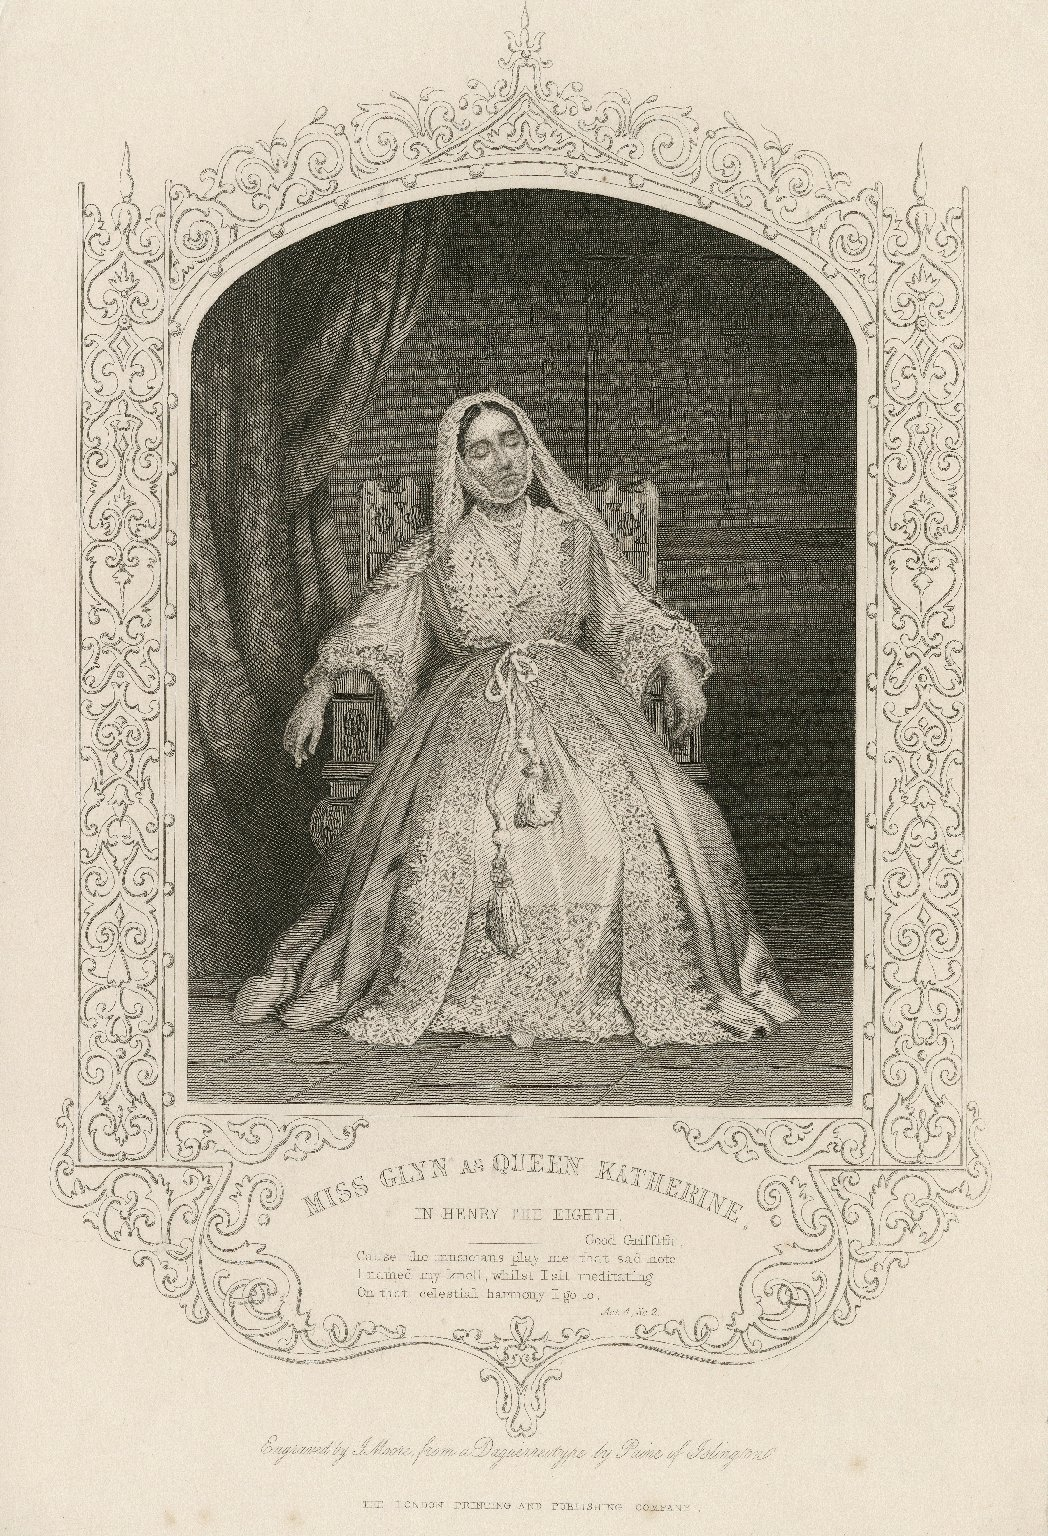 Miss Glyn as Queen Katherine in Henry the eighth [by Shakespeare] [graphic] / engraved by J. Moore from a daguerreotype by Paine of Islington.